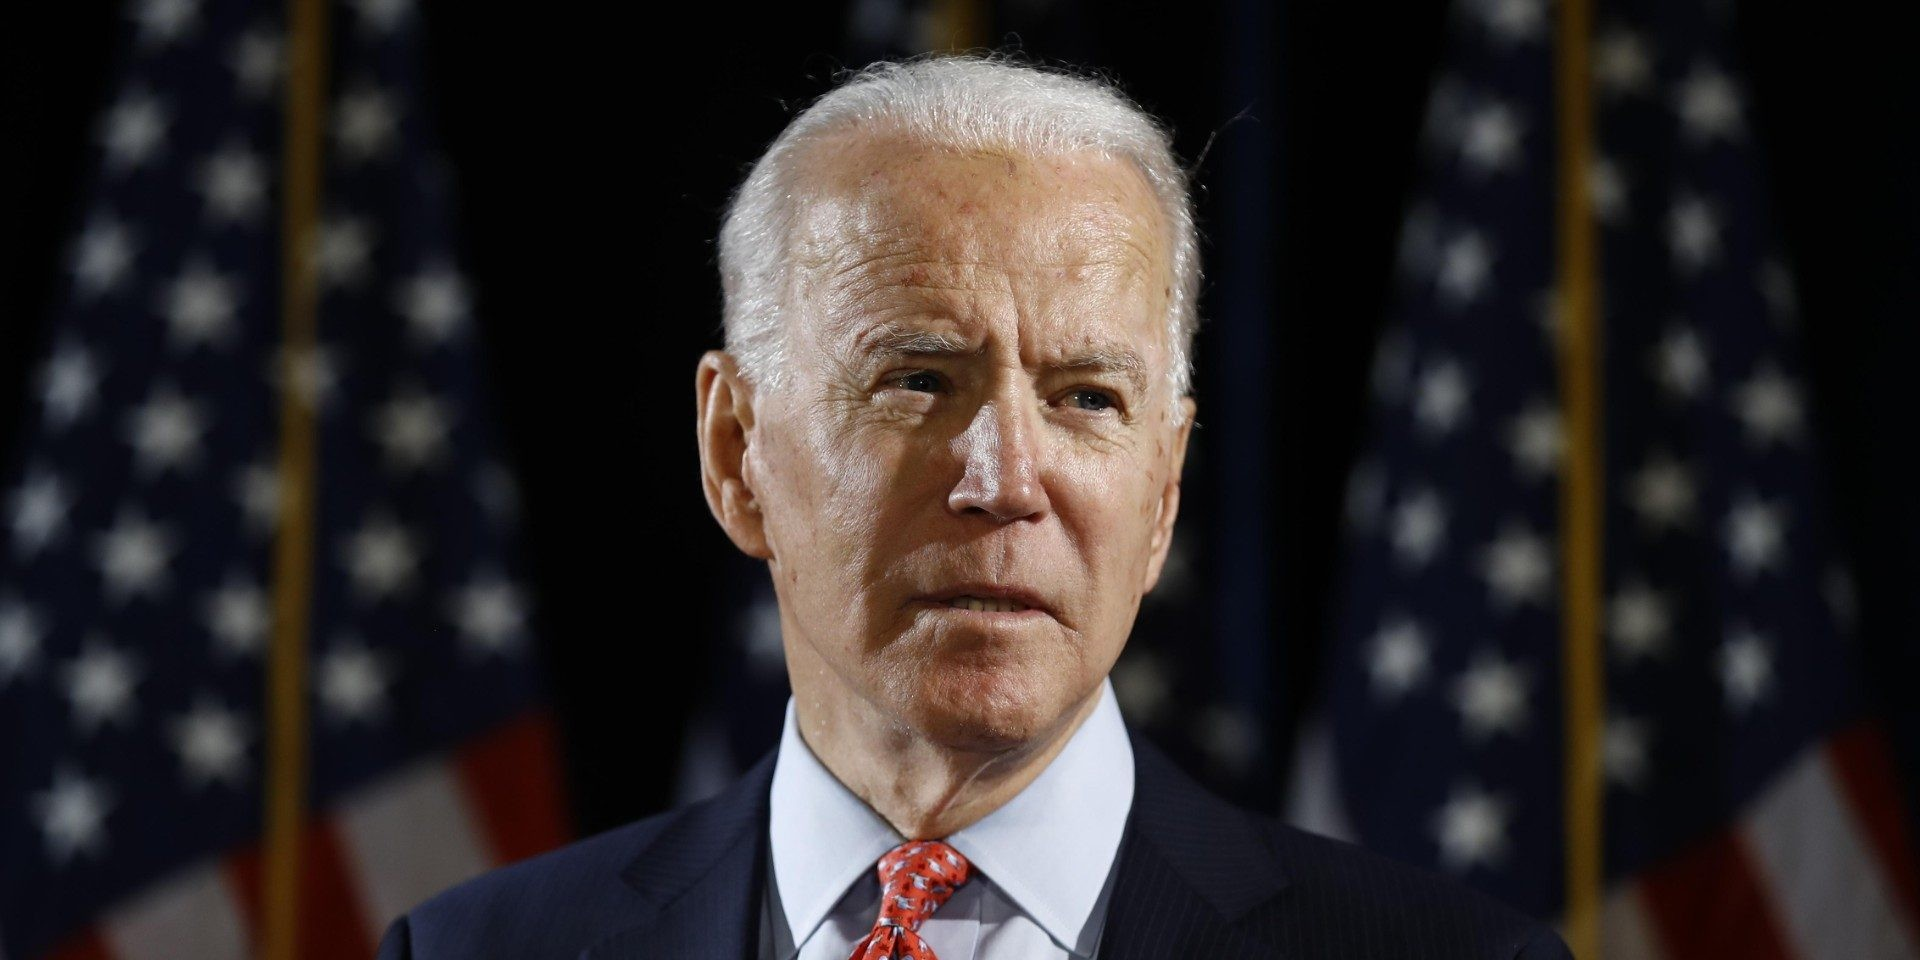 Joe Biden says green energy will create 'millions of jobs' - Electrek